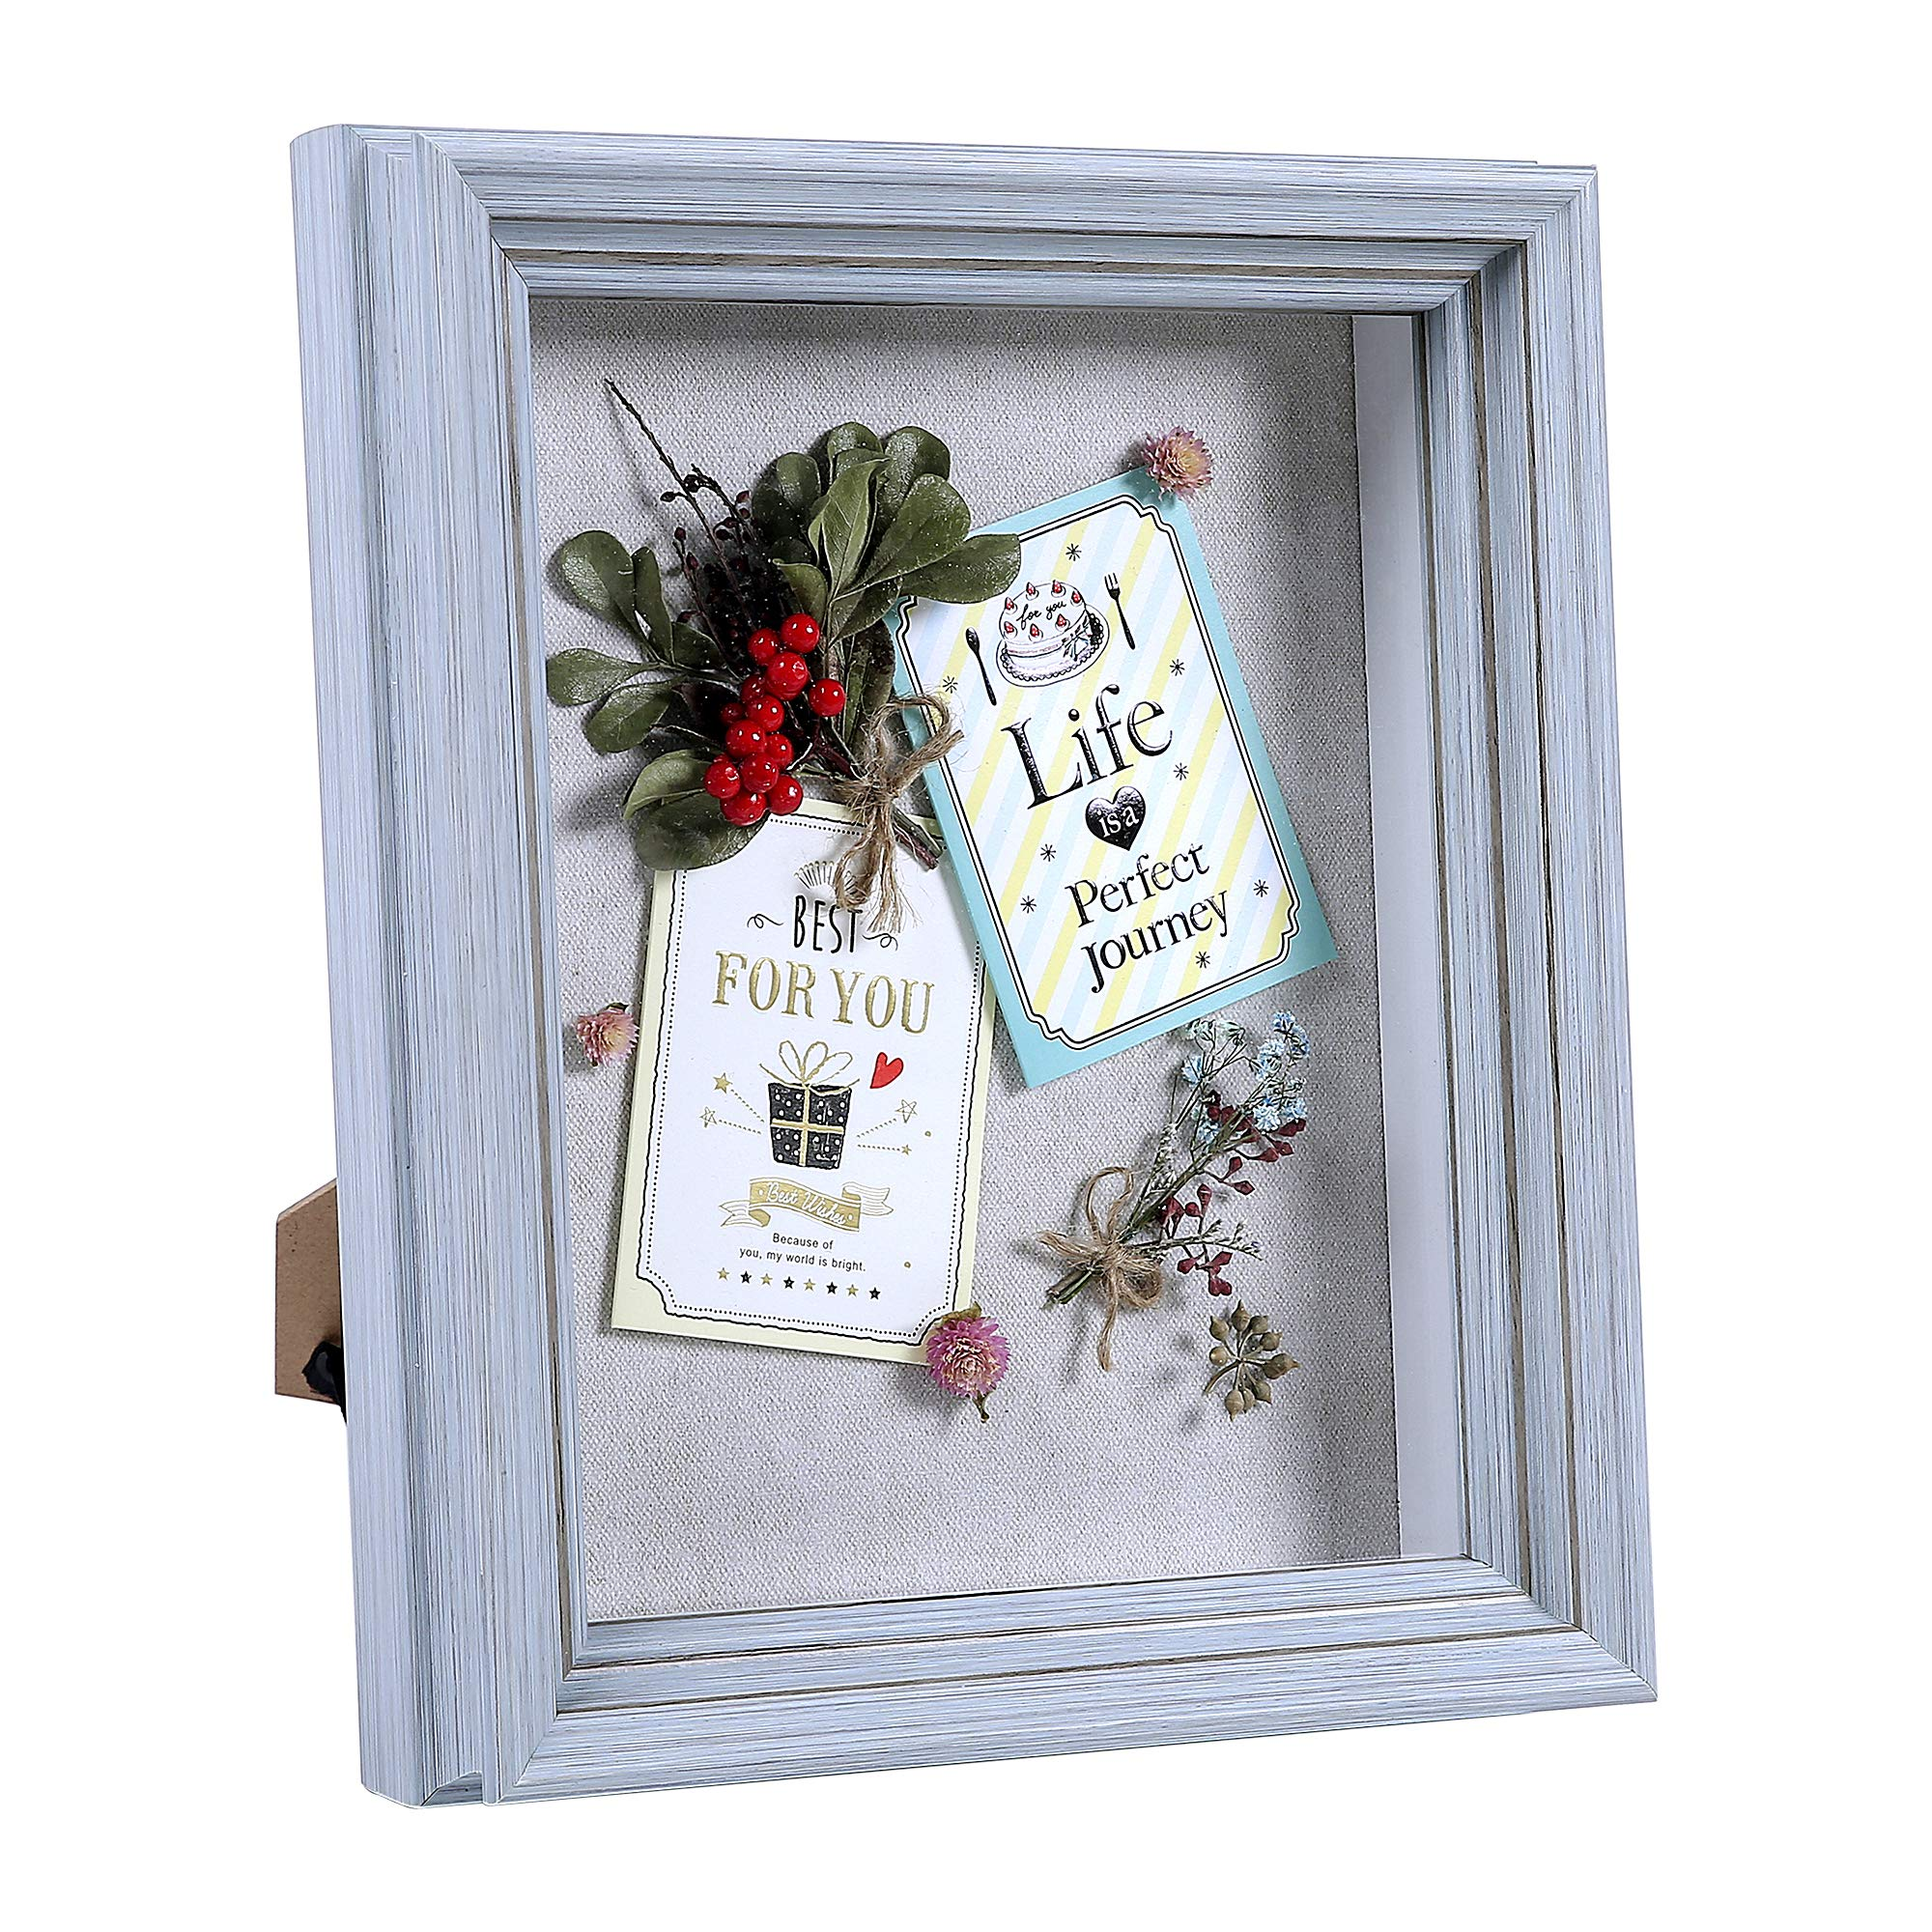 Flagship Shadow Box Frame Sized 8x10 Inch with Linen Board for Display and Protect Memorabilia (Photos, Medals, Pins, Cards), Pre-Installed Wall Mounting Hardware, Back Easel Included by Flagship Frames